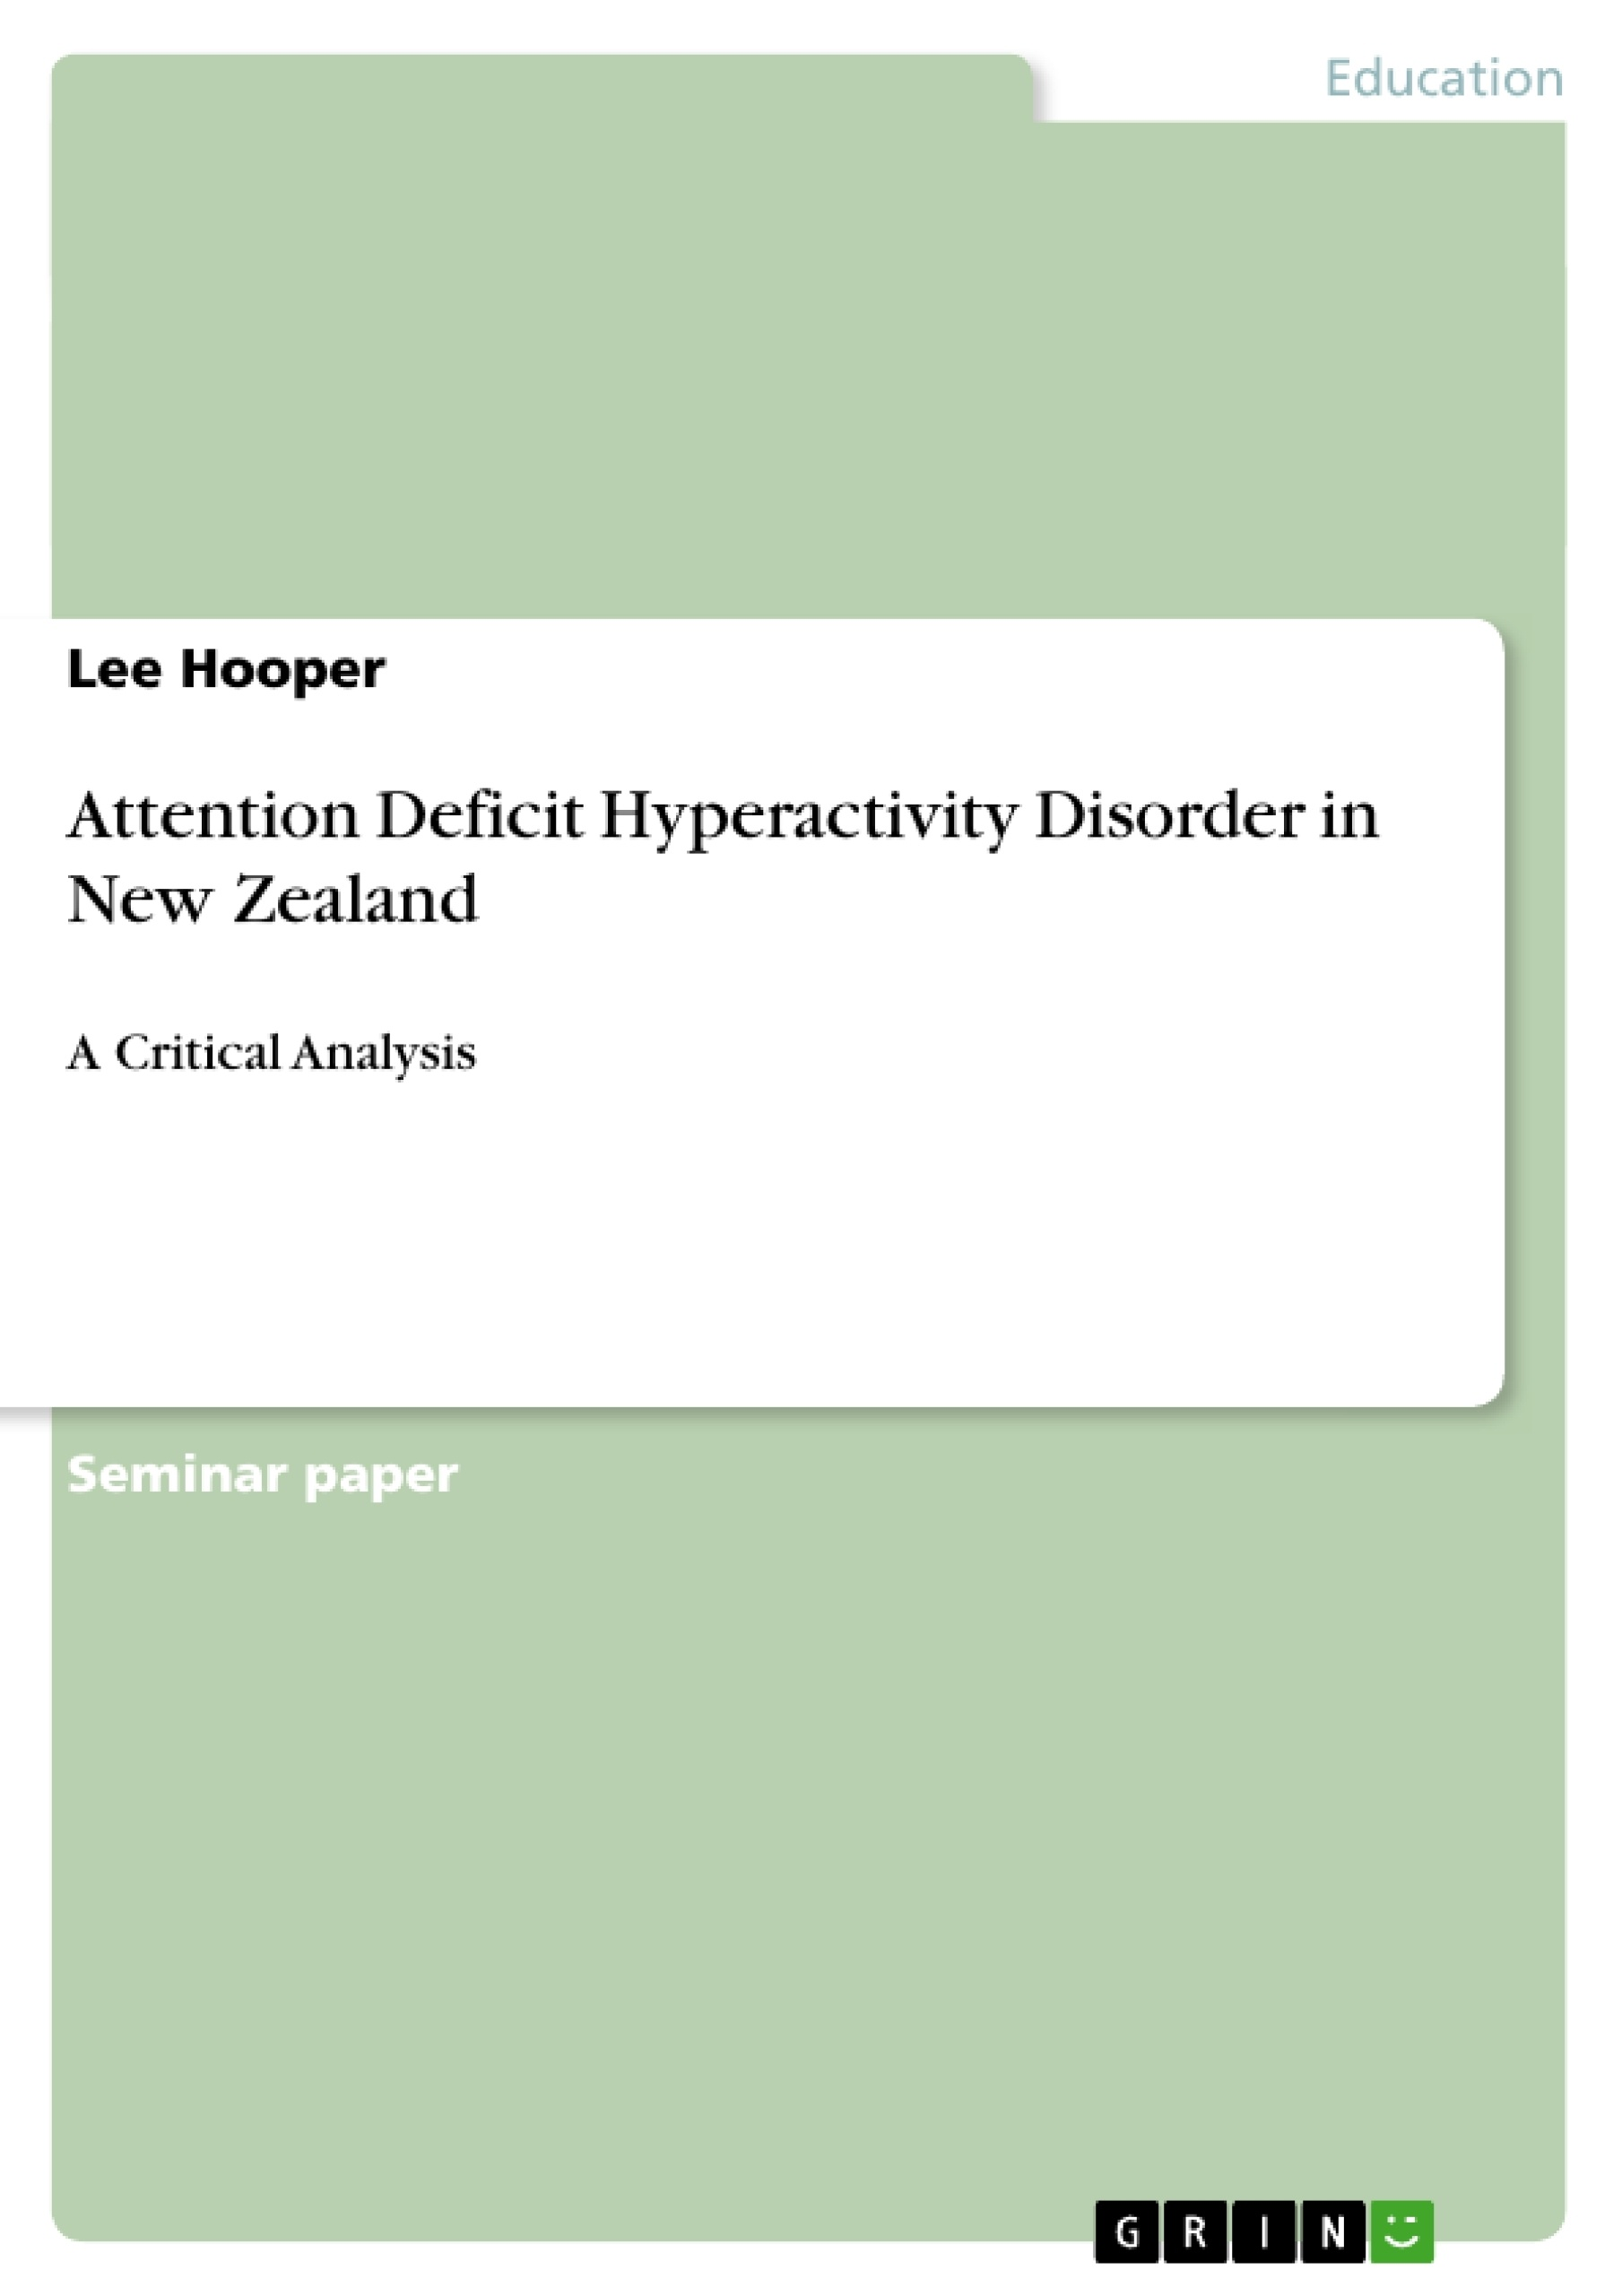 Title: Attention Deficit Hyperactivity Disorder in New Zealand